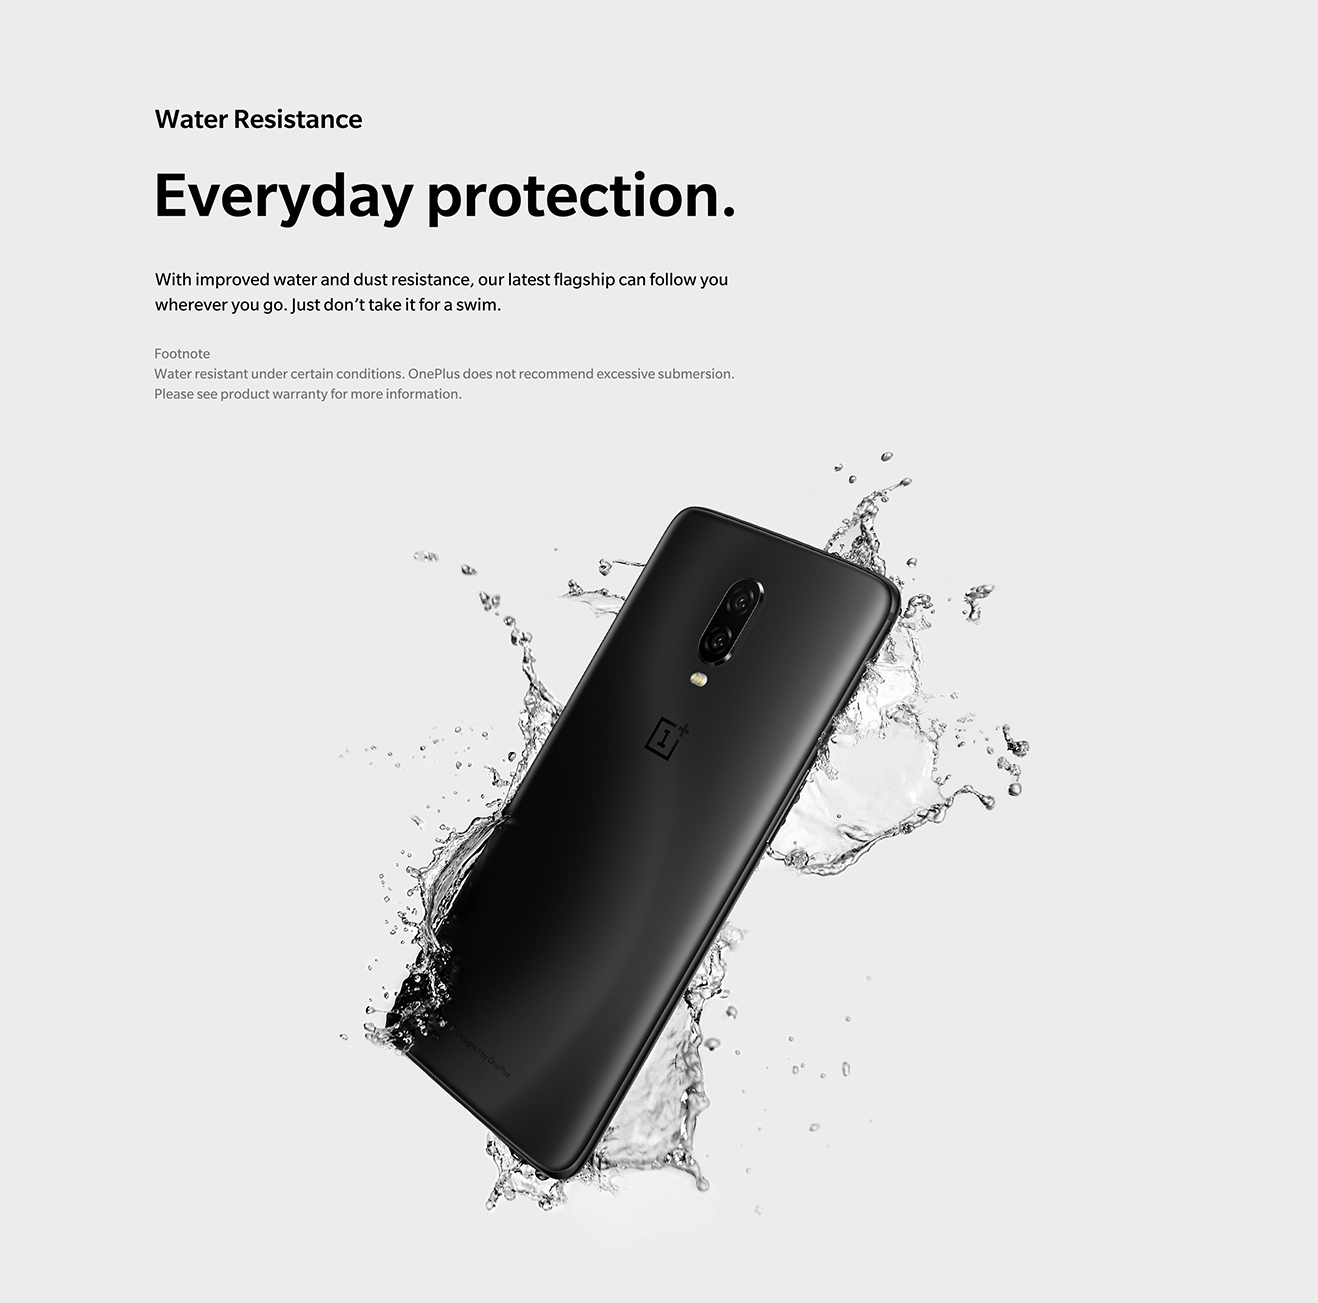 Everyday protection